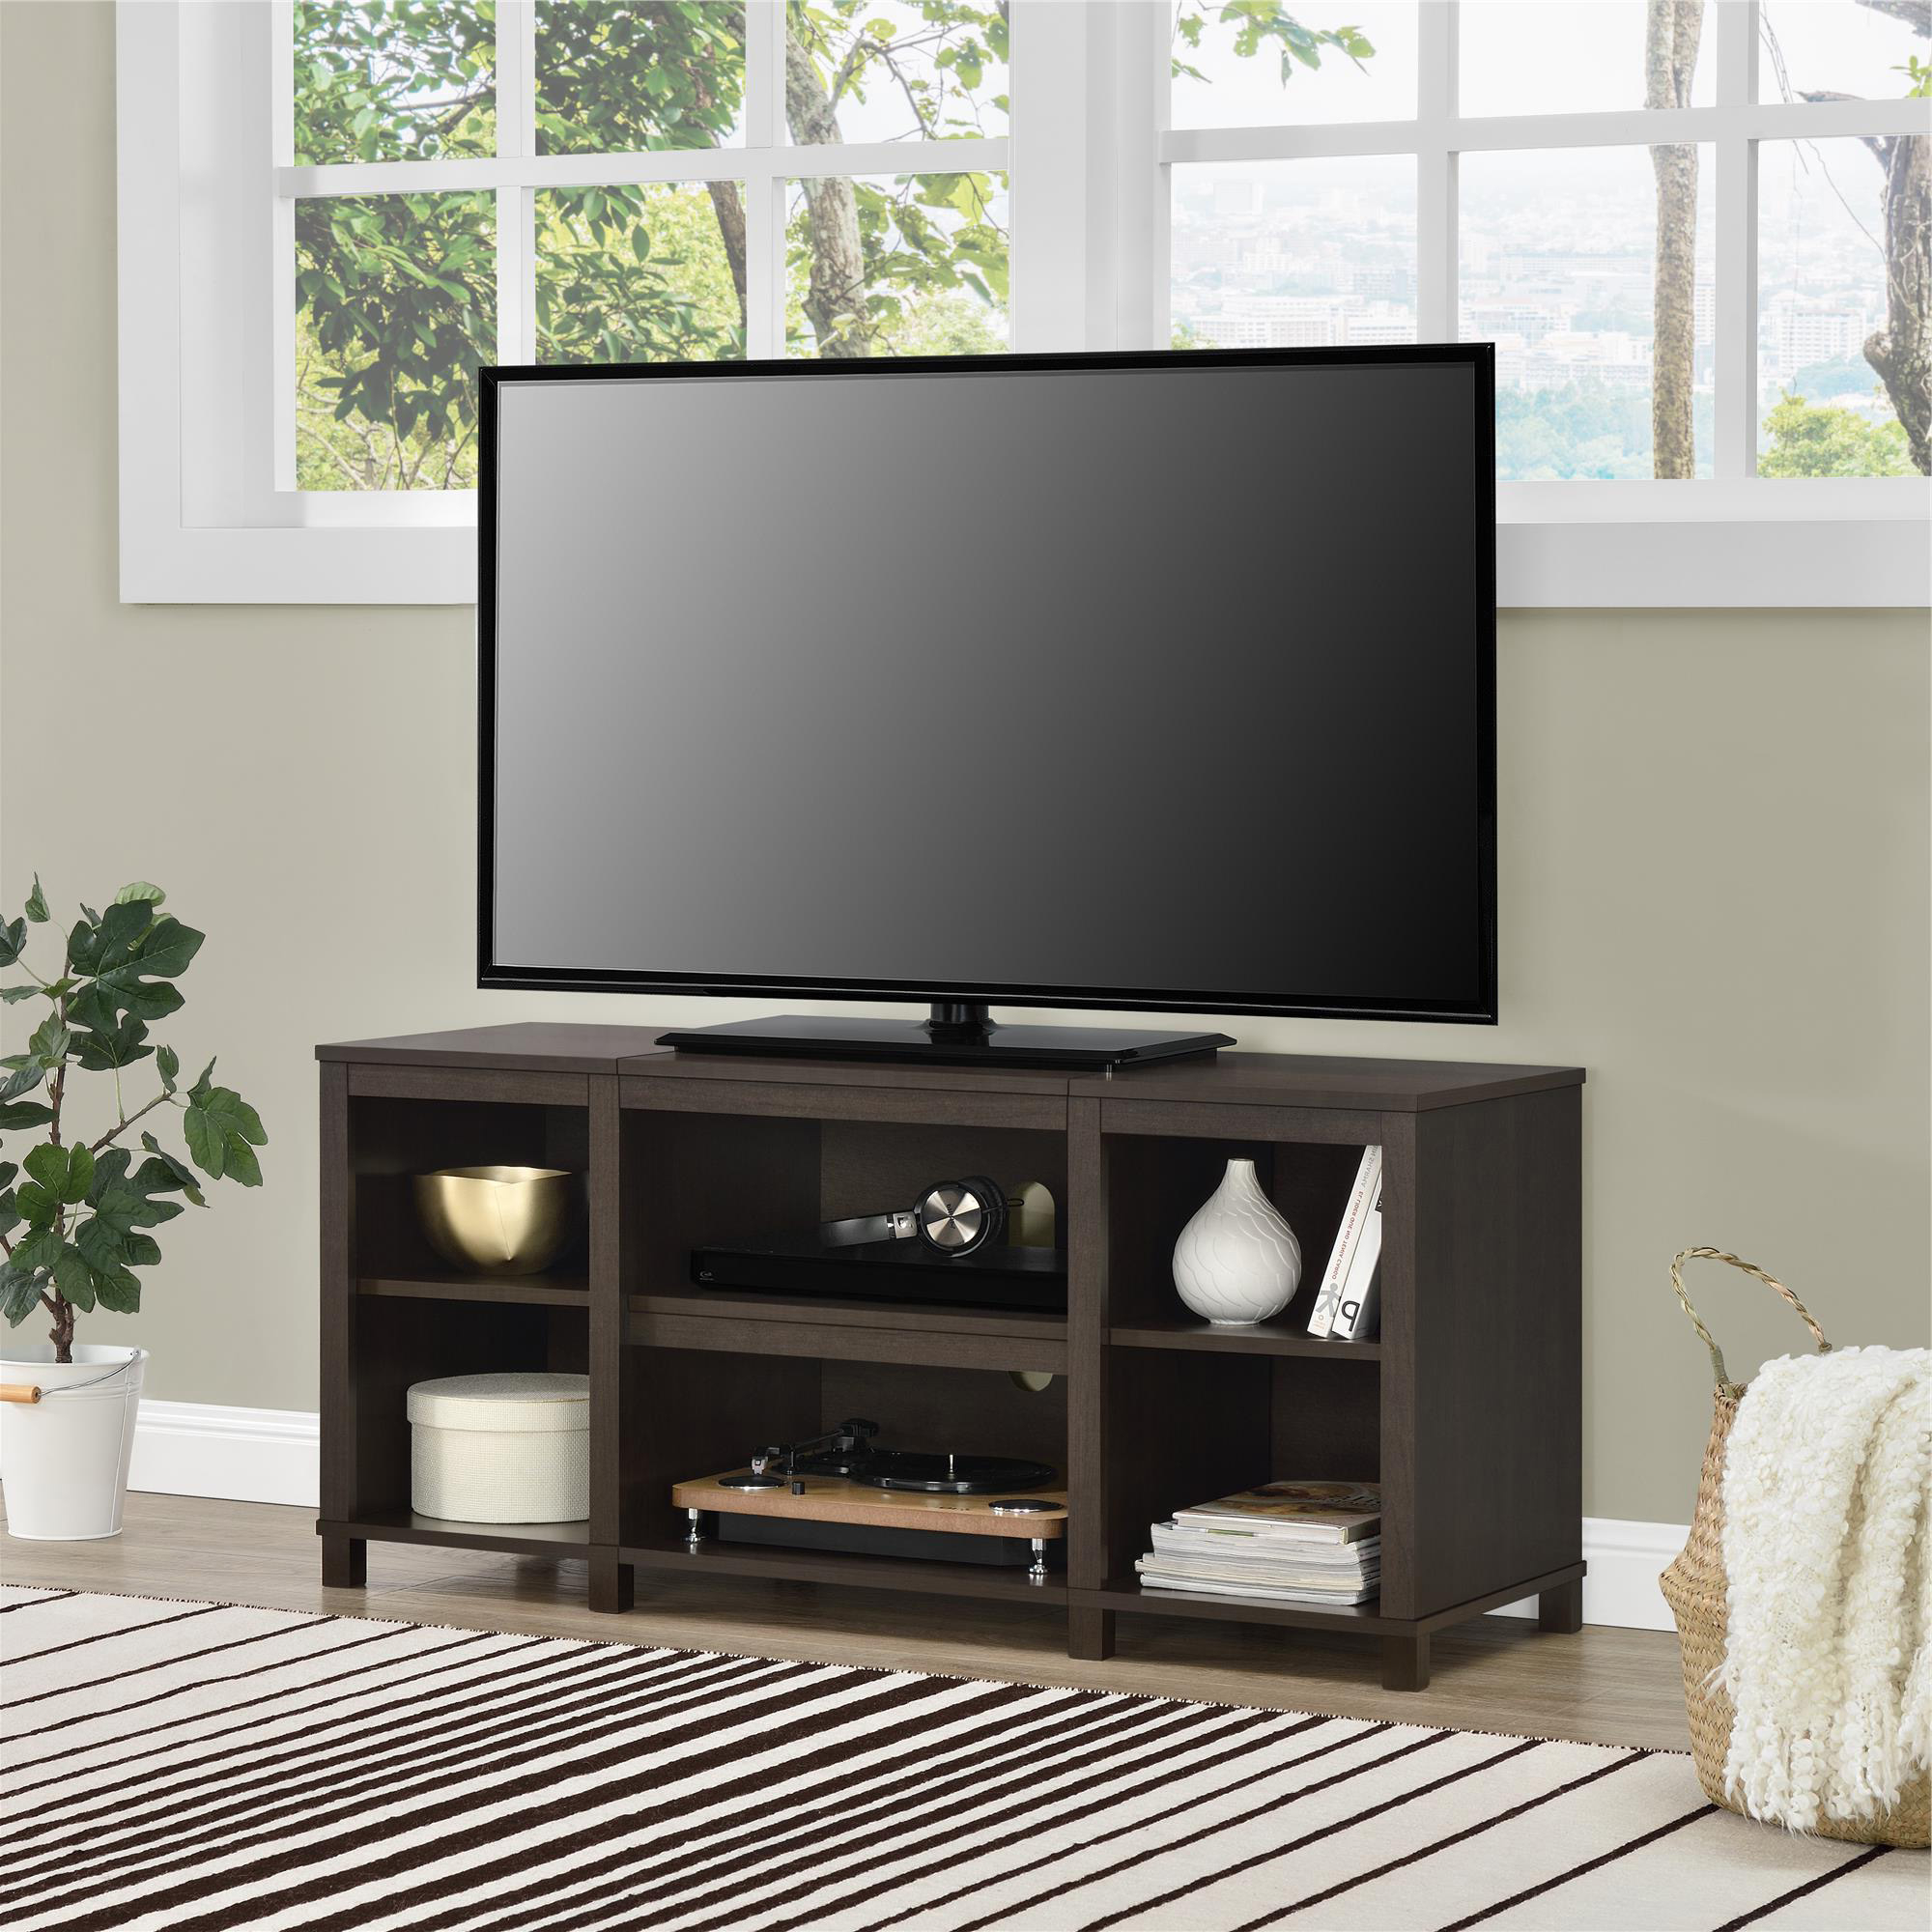 Tv Stand For 50 Inch Tv Media Center Storage Shelves Wood Flat With Regard To Canyon 74 Inch Tv Stands (View 19 of 20)